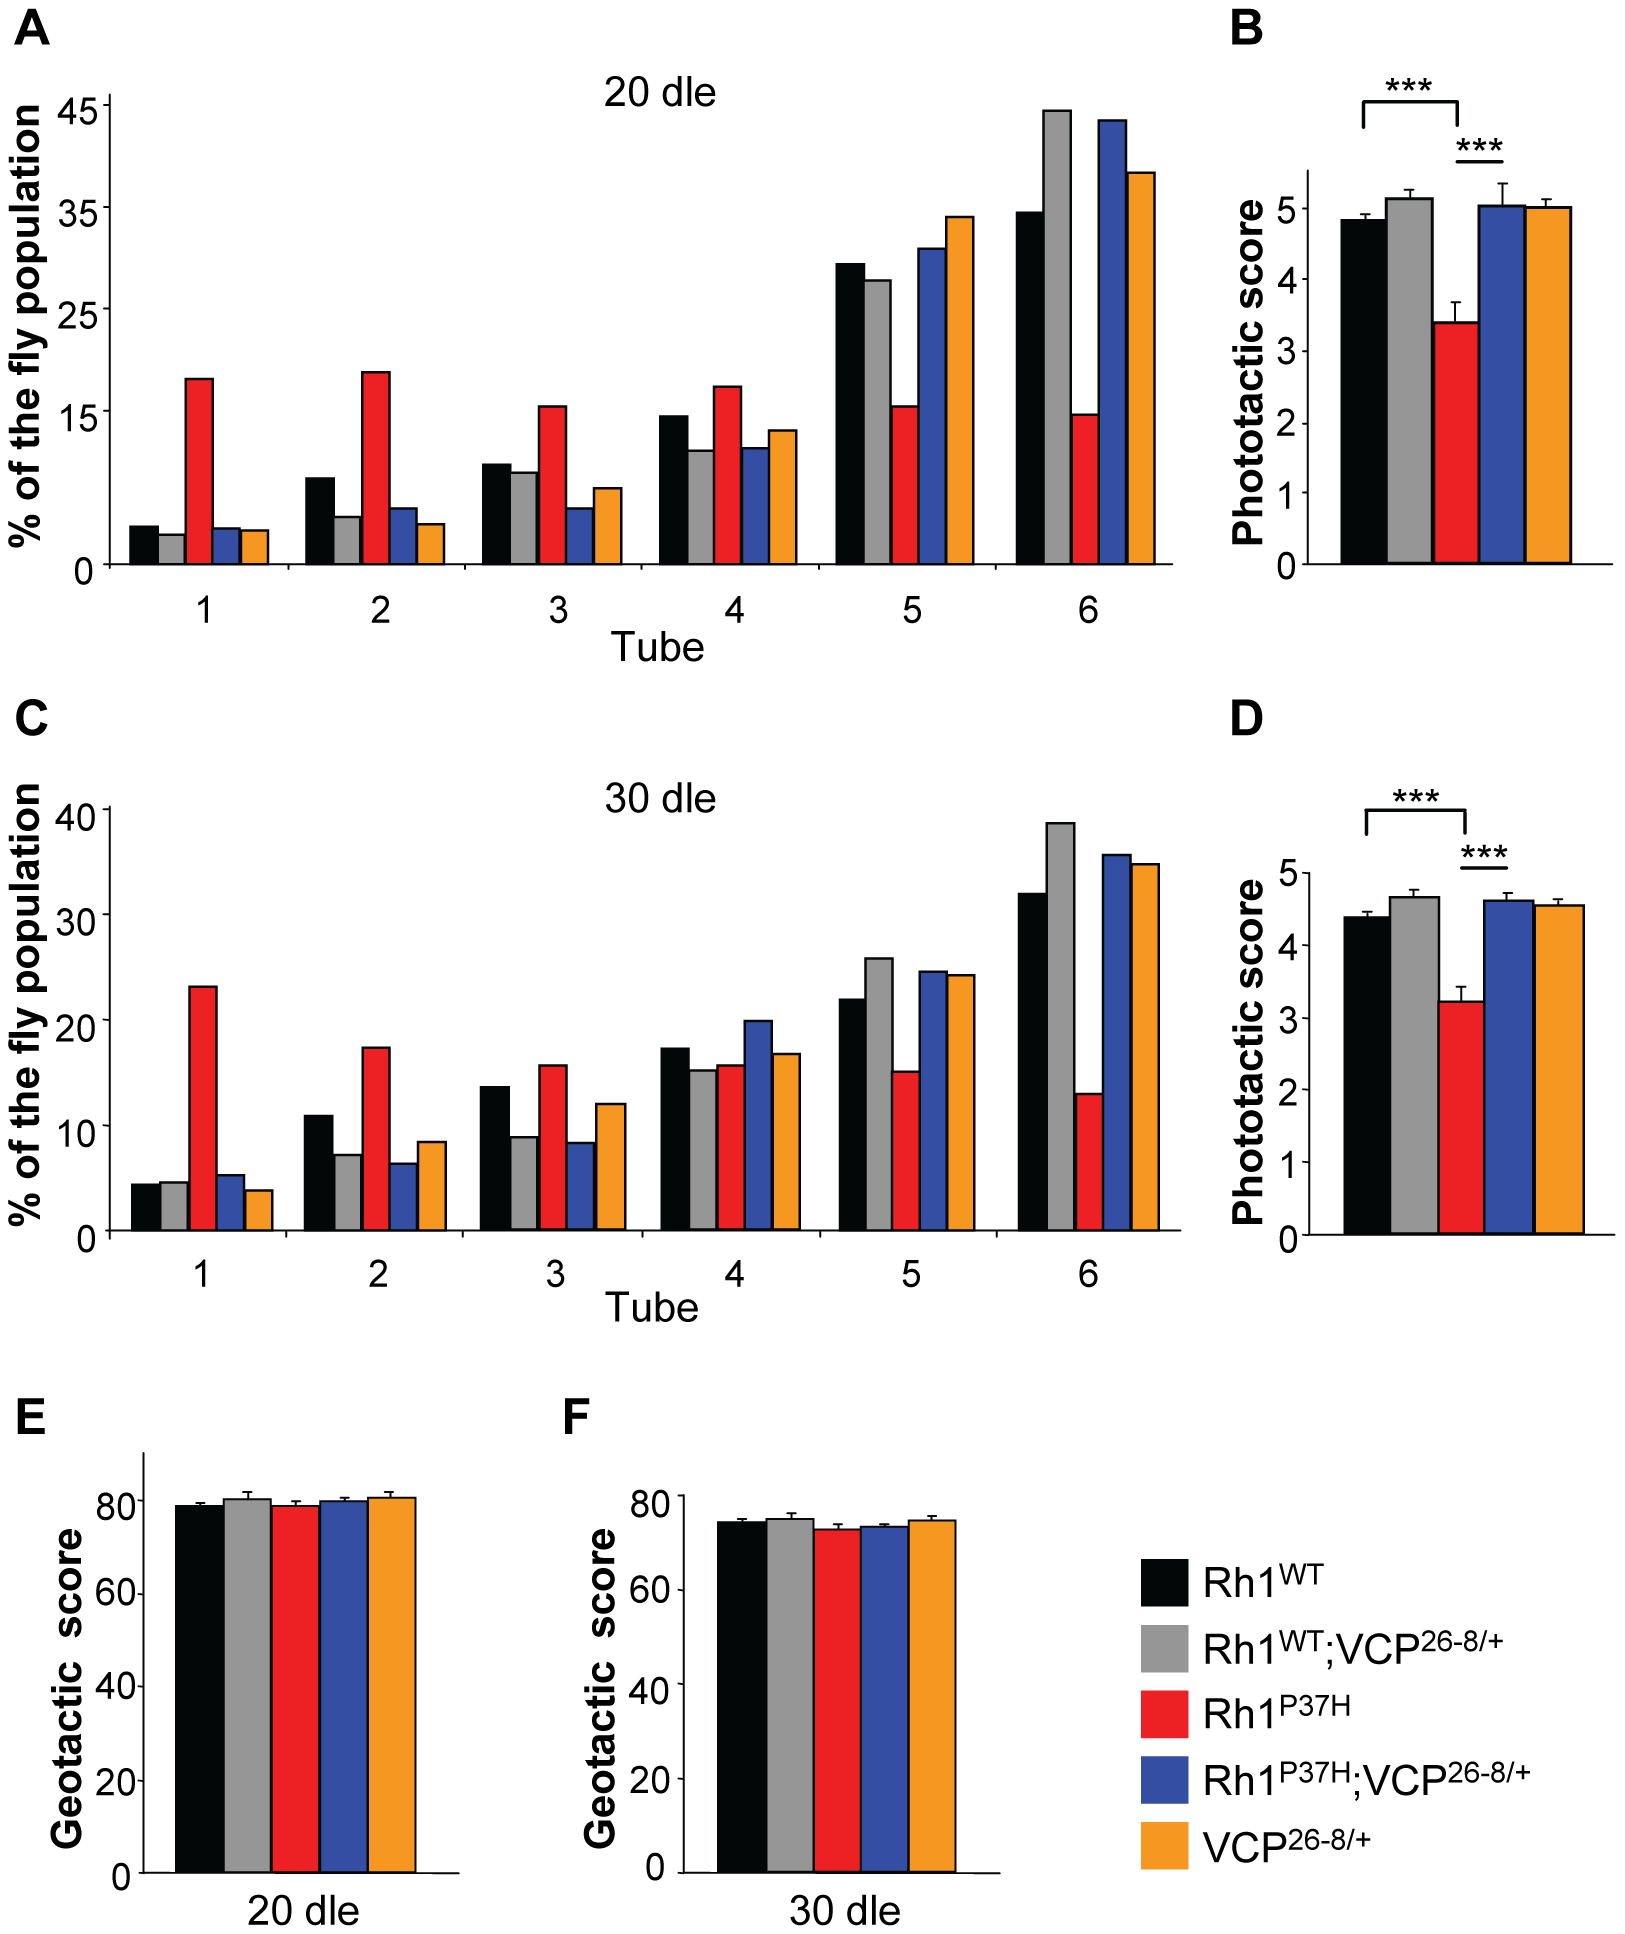 Altered phototaxis in <i>Rh1<sup>P37H</sup></i>-expressing flies is rescued by <i>VCP</i> loss-of-function allele.